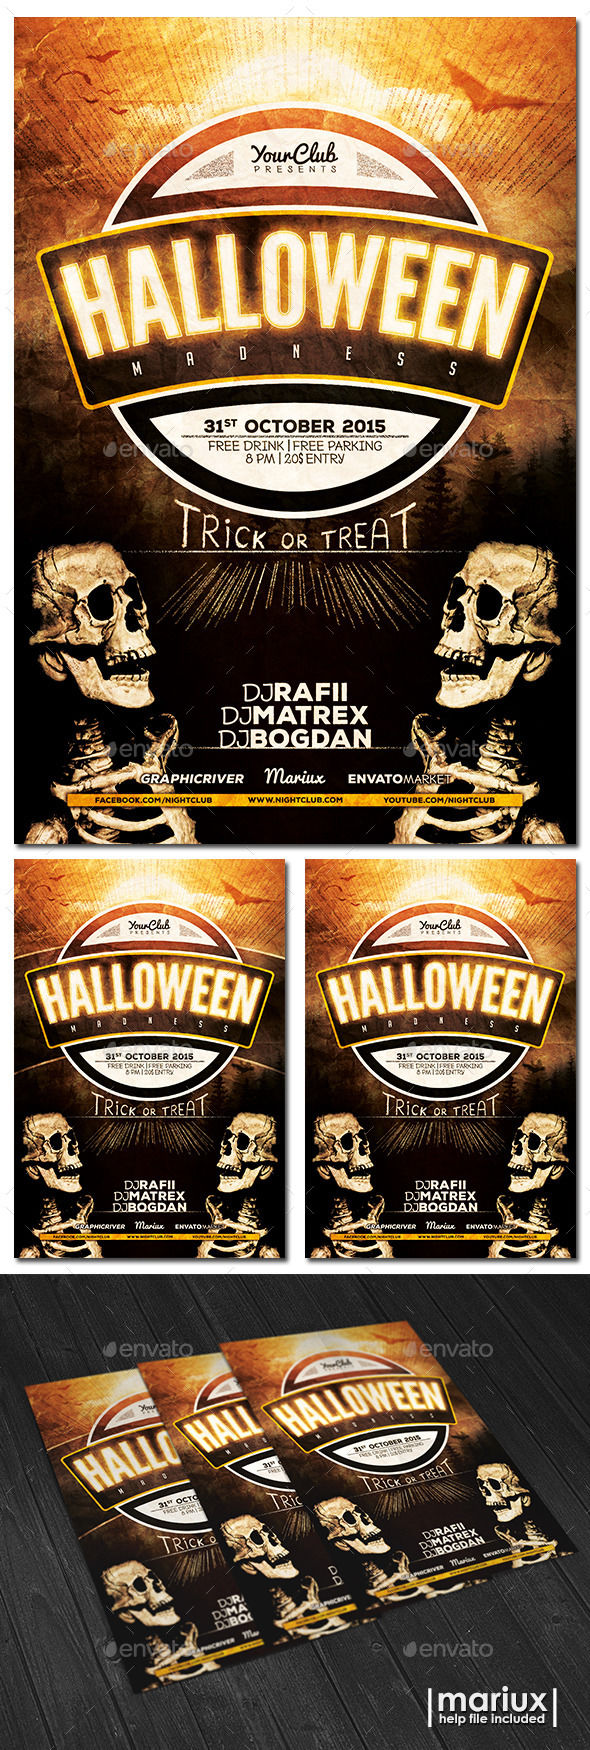 Halloween Party Flyer by Mariux (Halloween party flyer)